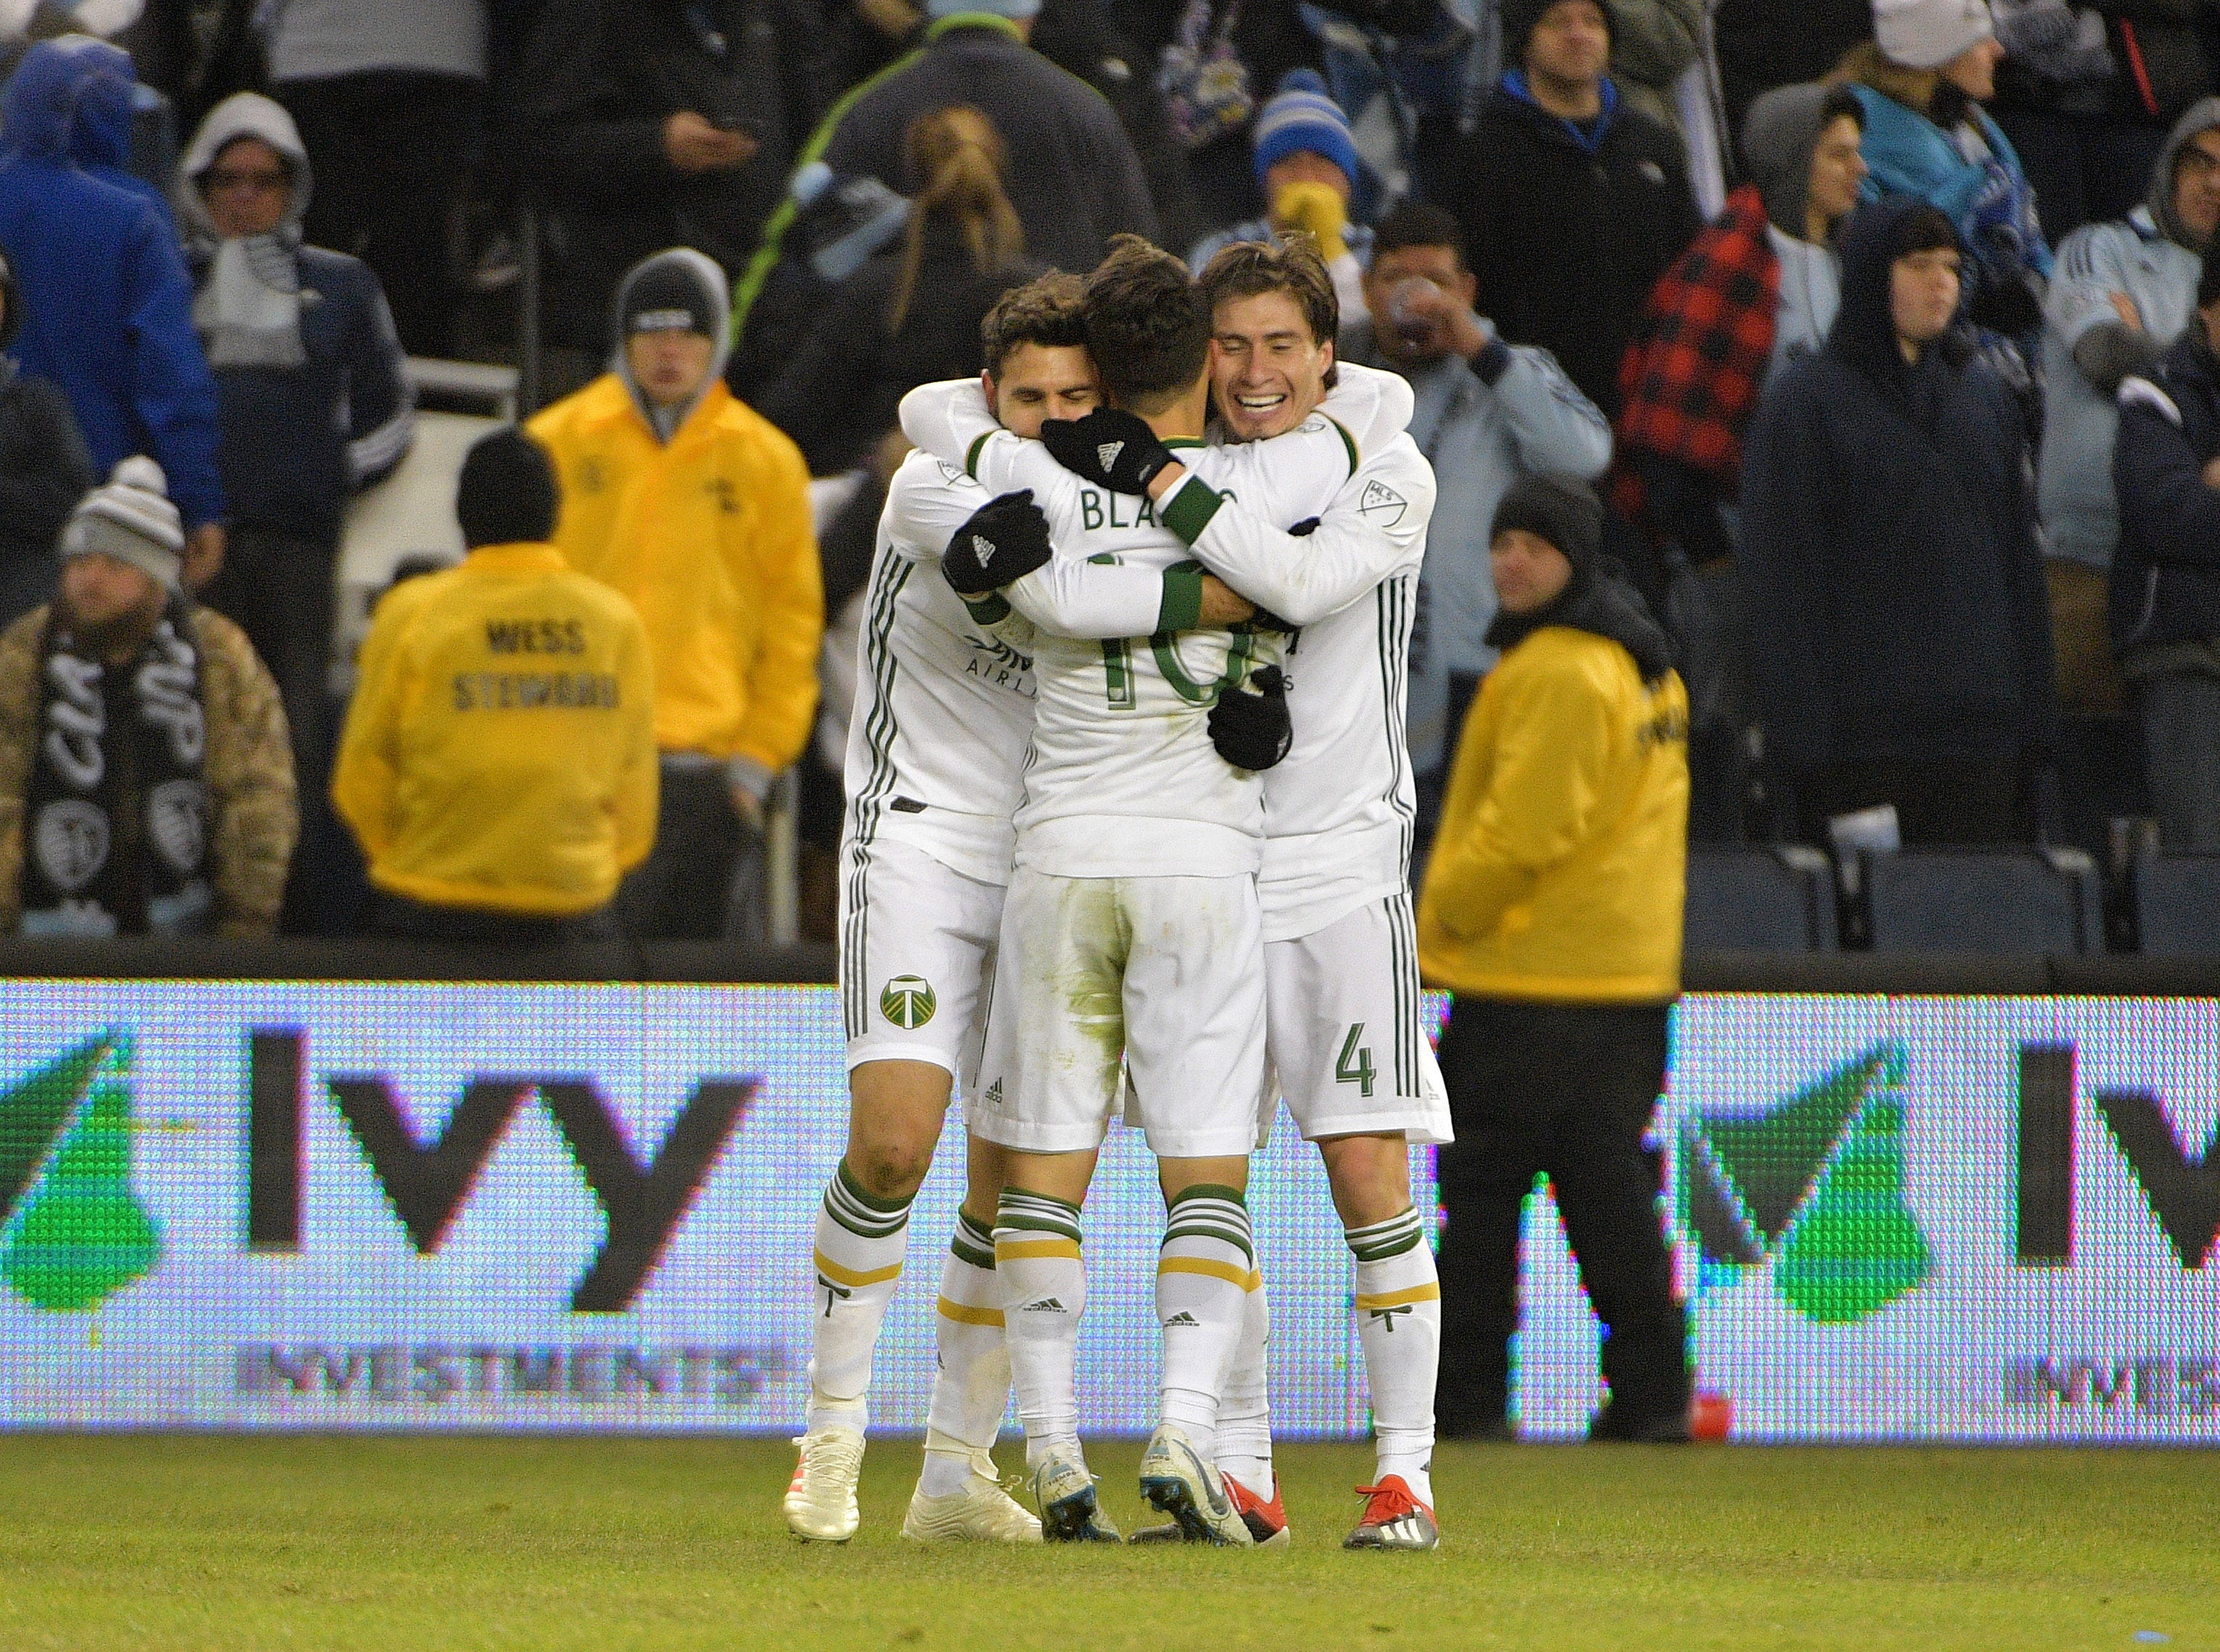 Nov 29, 2018; Kansas City, KS, USA; Portland Timbers midfielder Diego Valeri (8) celebrates with defender Jorge Villafana (4) and midfielder Sebastian Blanco (10) after scoring a goal  against Sporting Kansas City in the second leg of the MLS Western Conference Championship at Children's Mercy Park. Mandatory Credit: Denny Medley-USA TODAY Sports